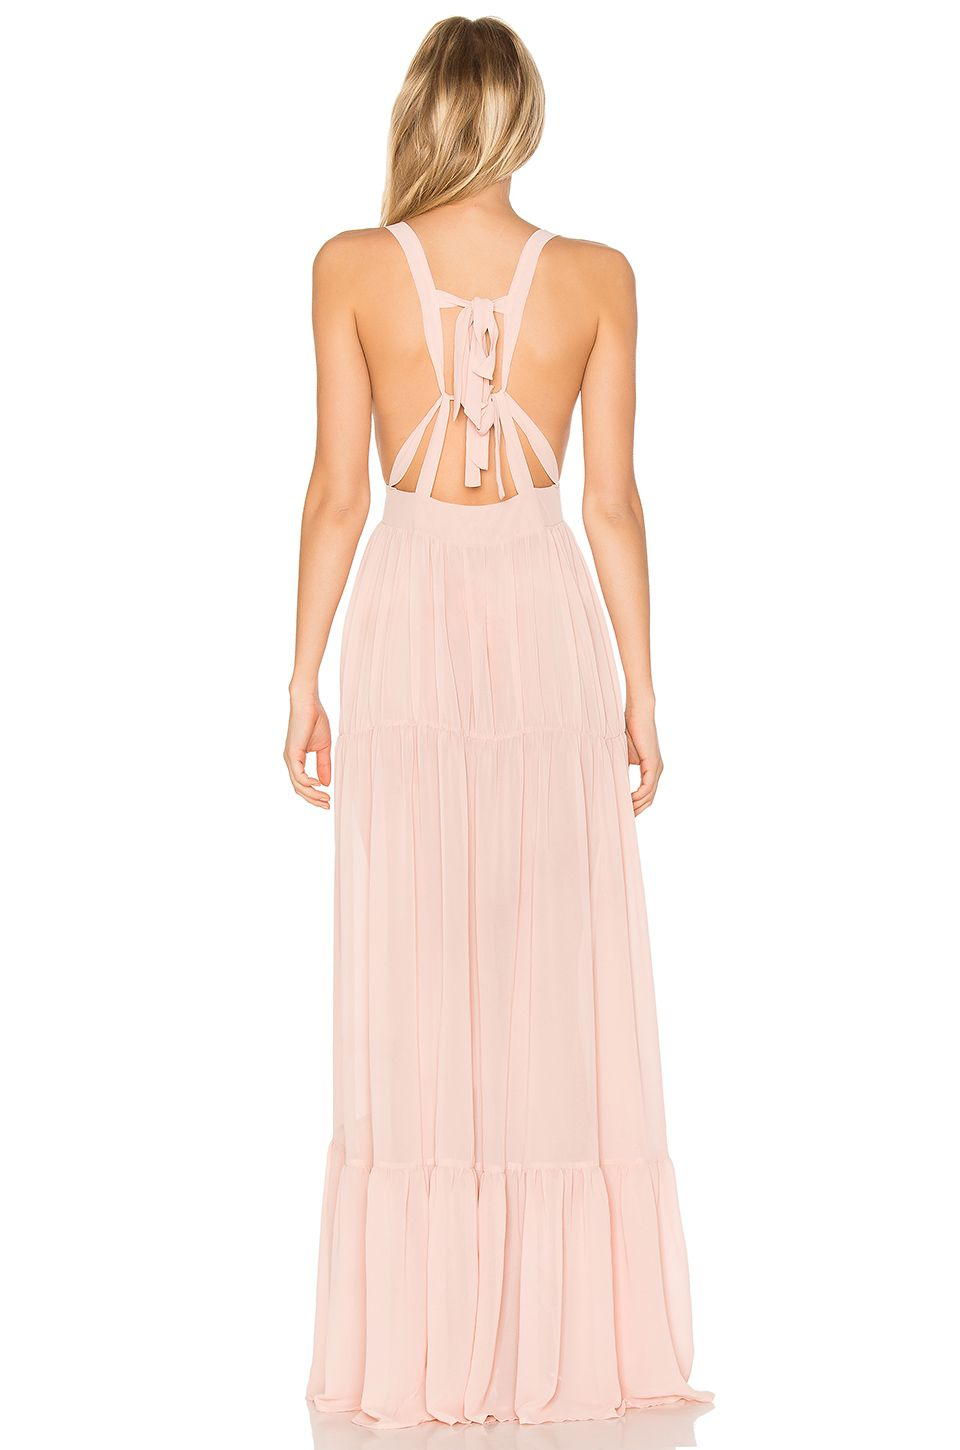 Daydream Nation Hopeless LA Maxi Dress in Ballerina | REVOLVE ...